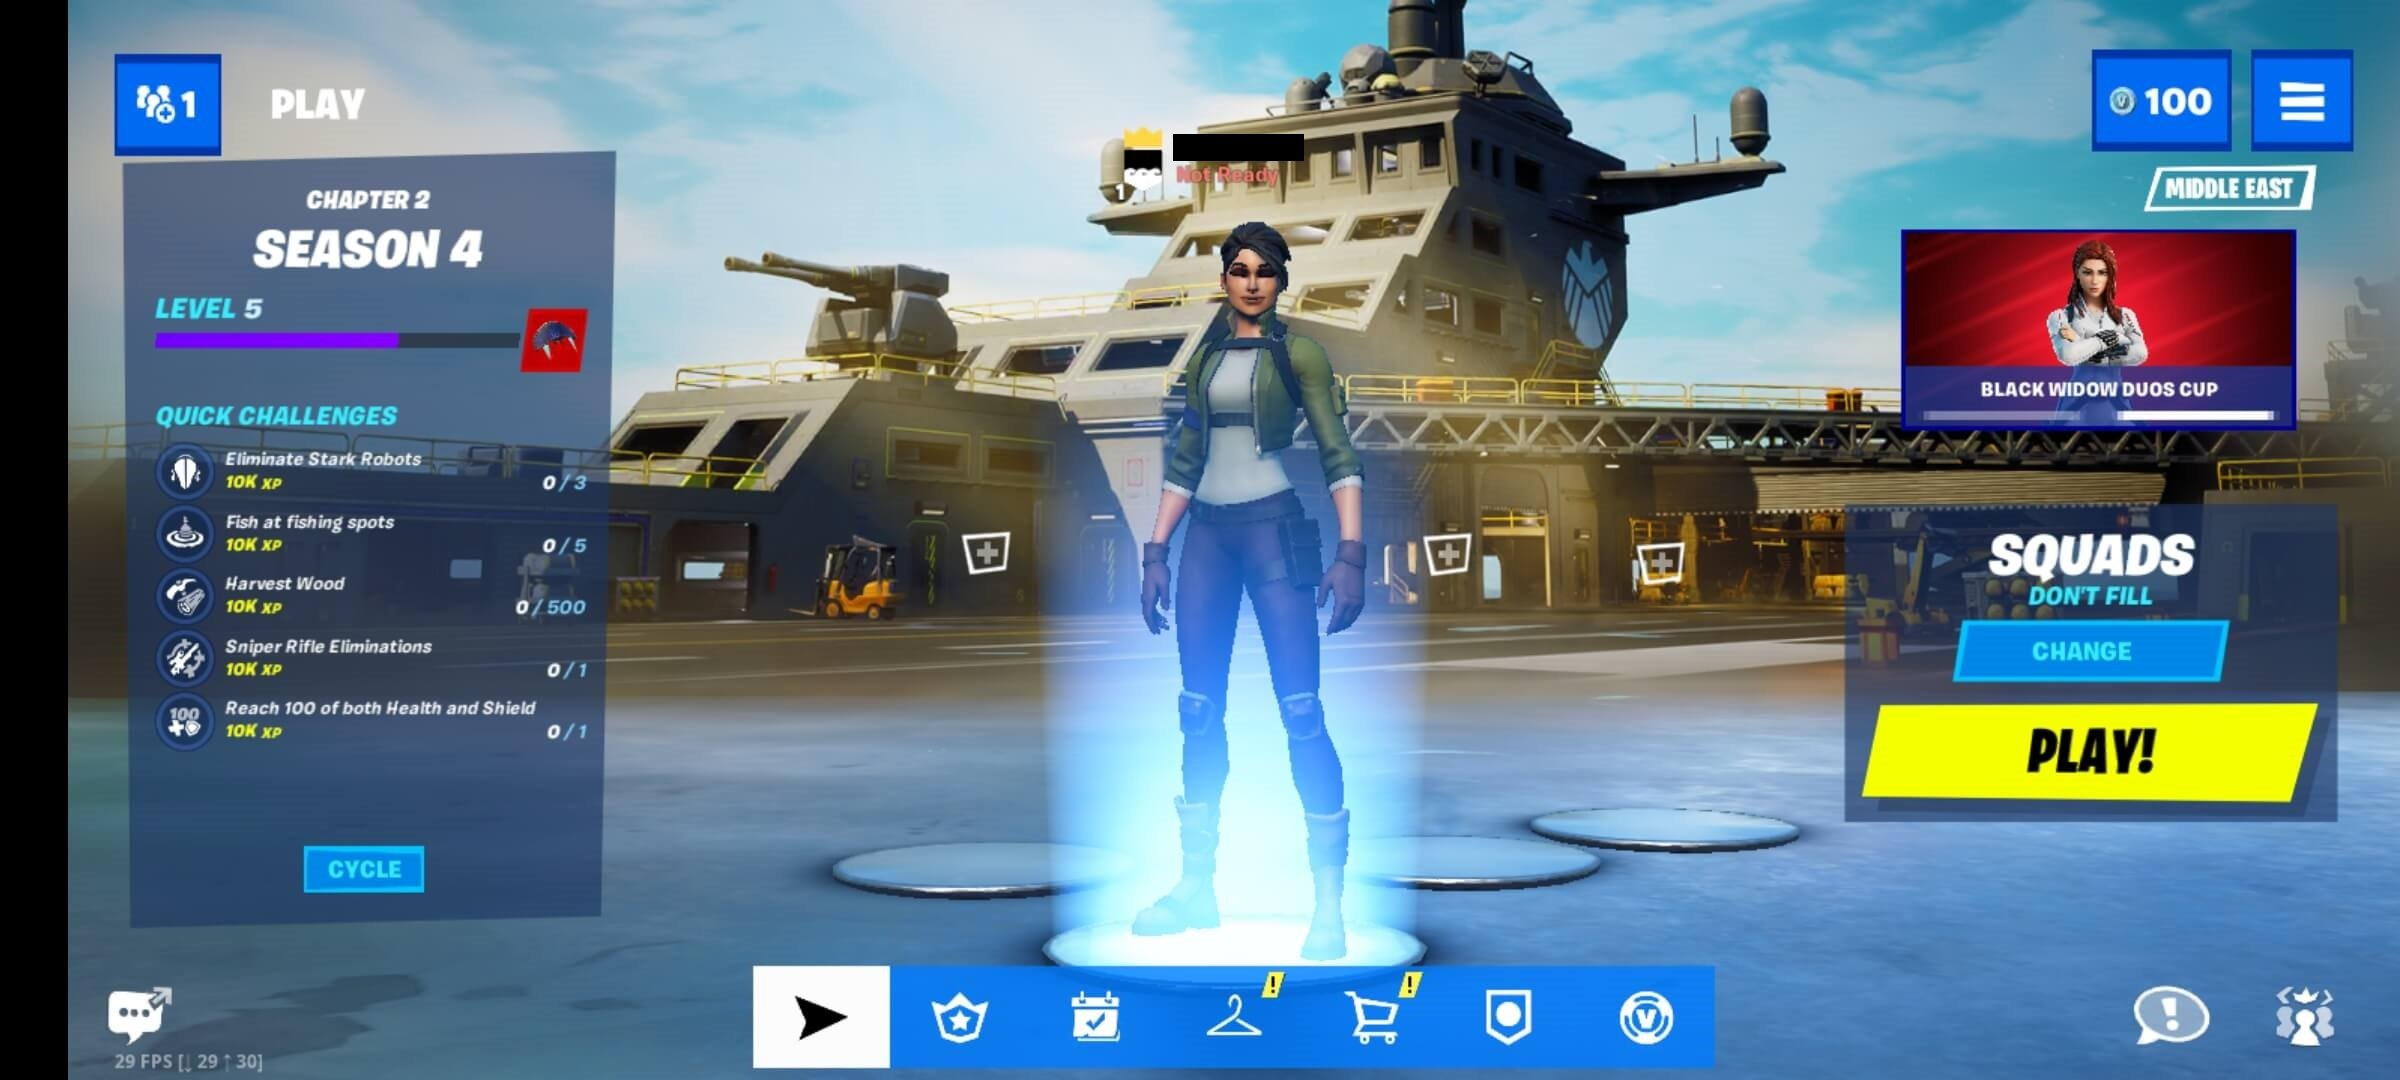 How to crossplay Fortnite on Mobile with other platforms